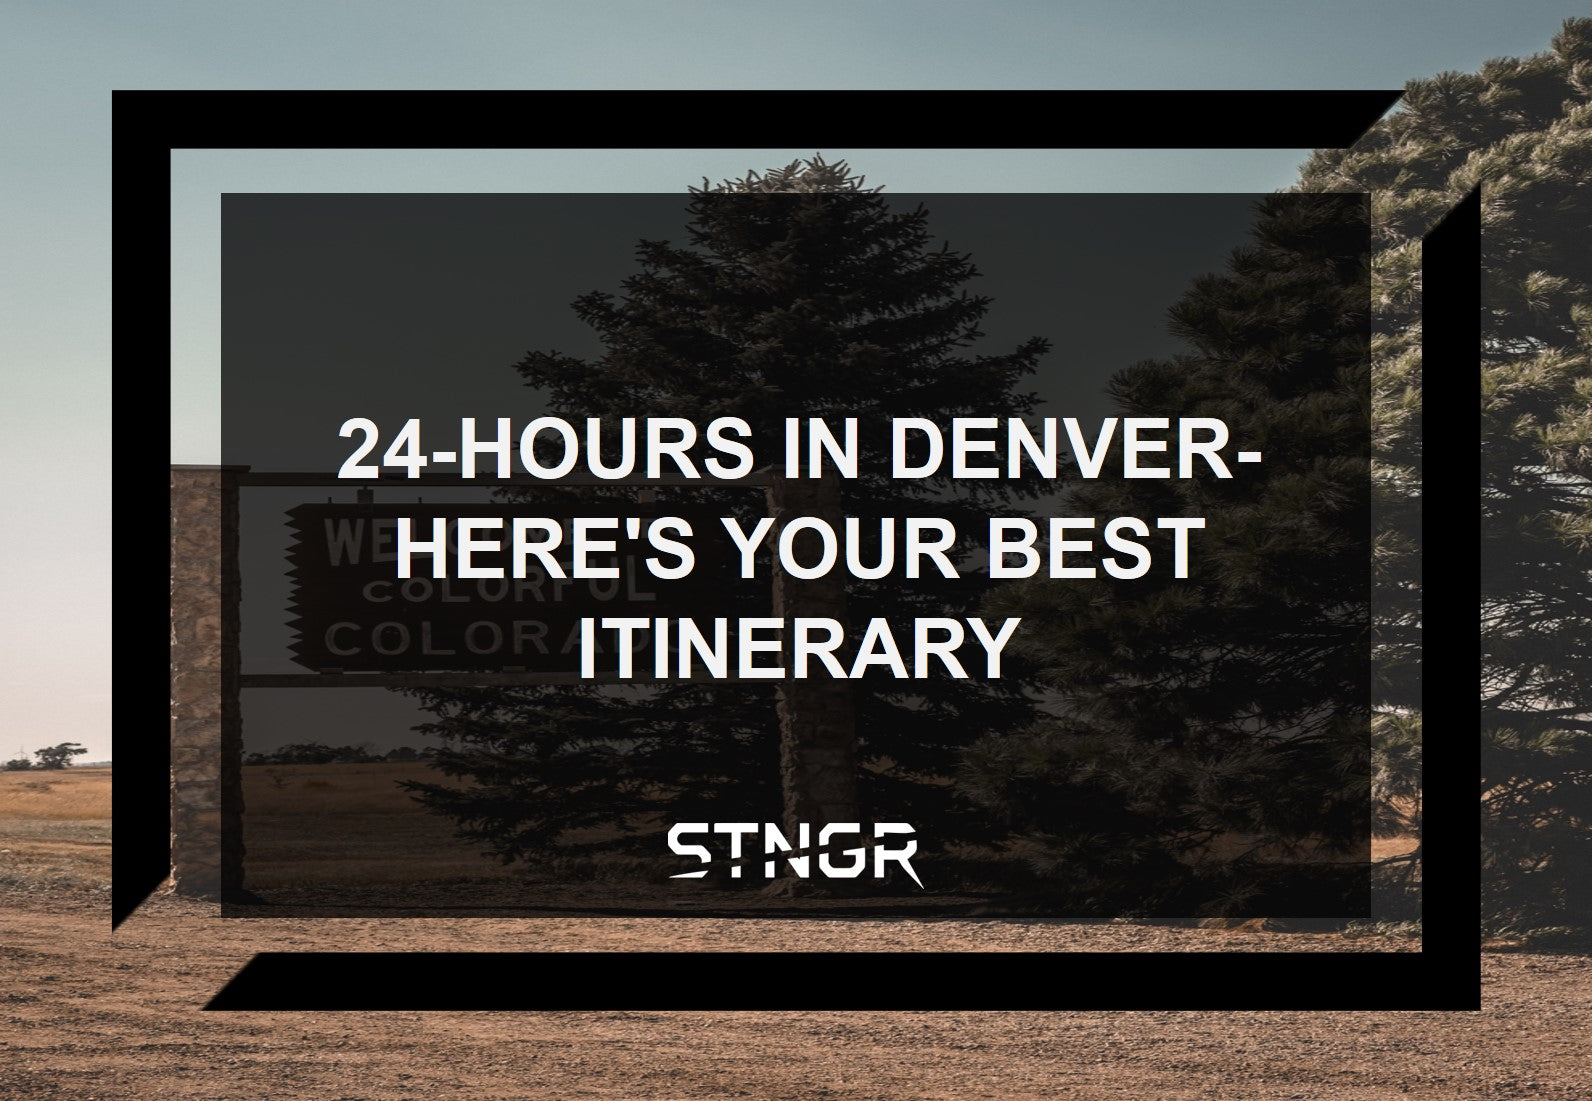 24-Hours in Denver-Here's Your Best Itinerary